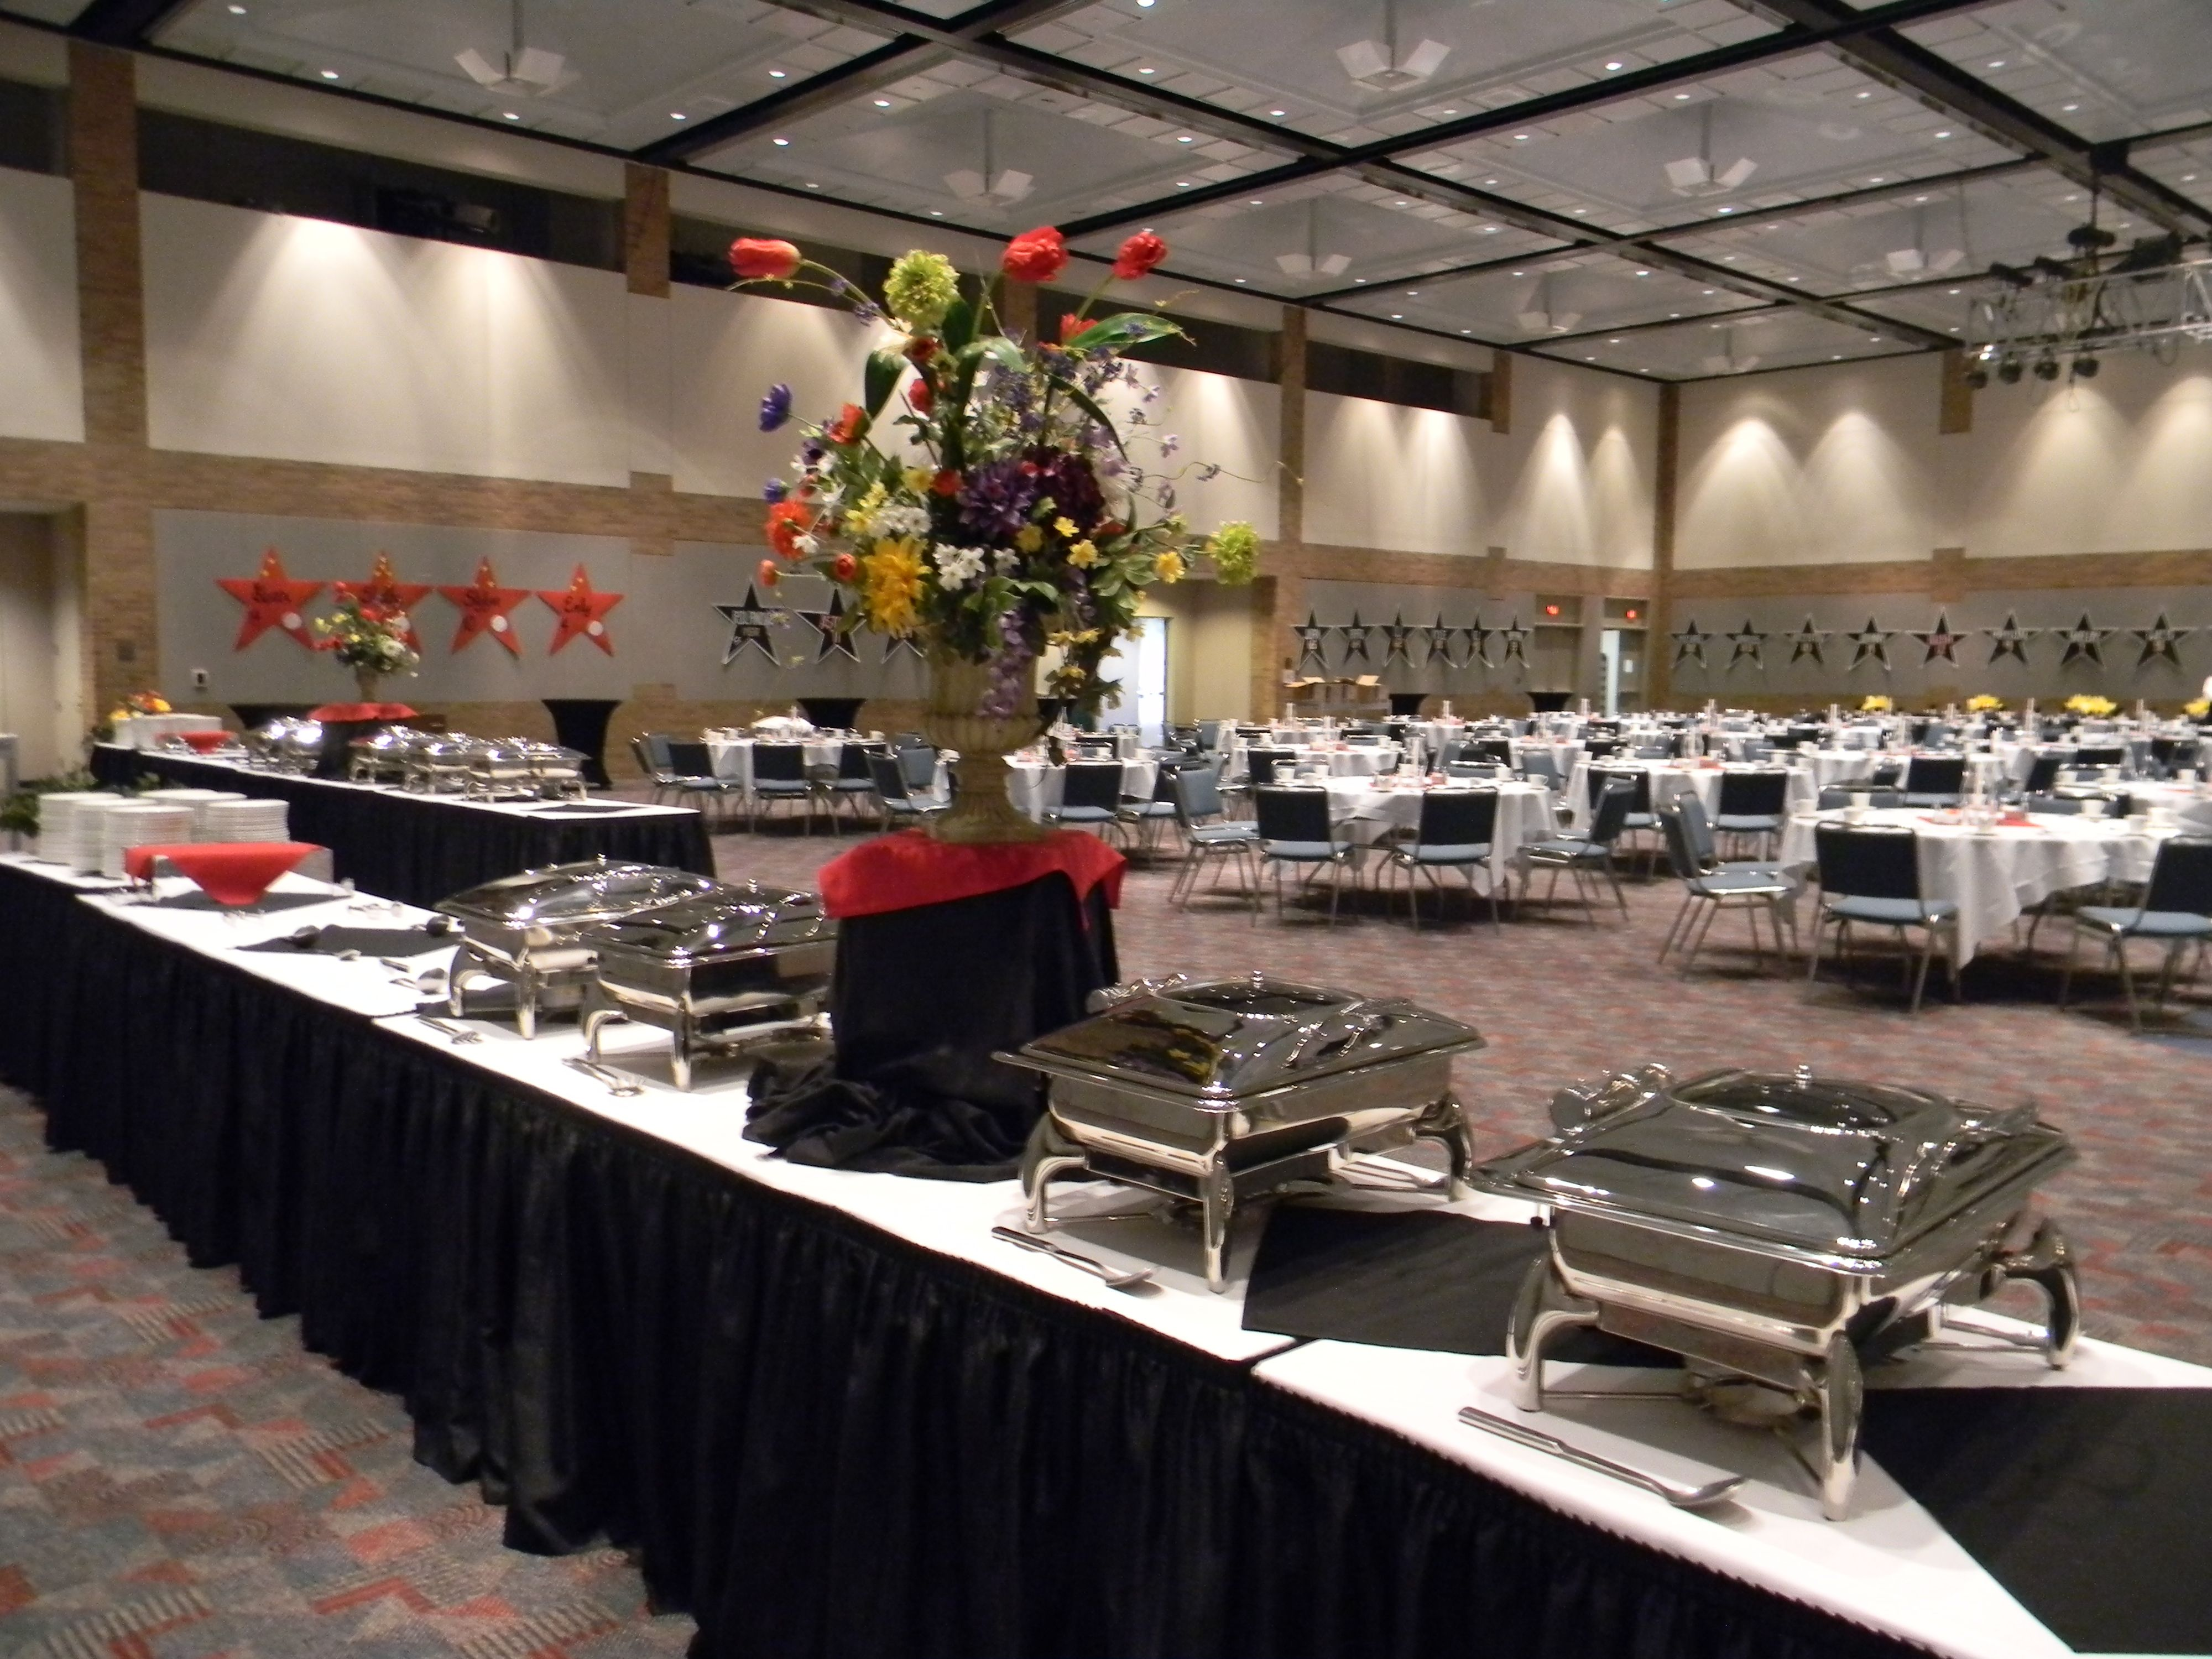 Set up for a high school athletic banquet plano event